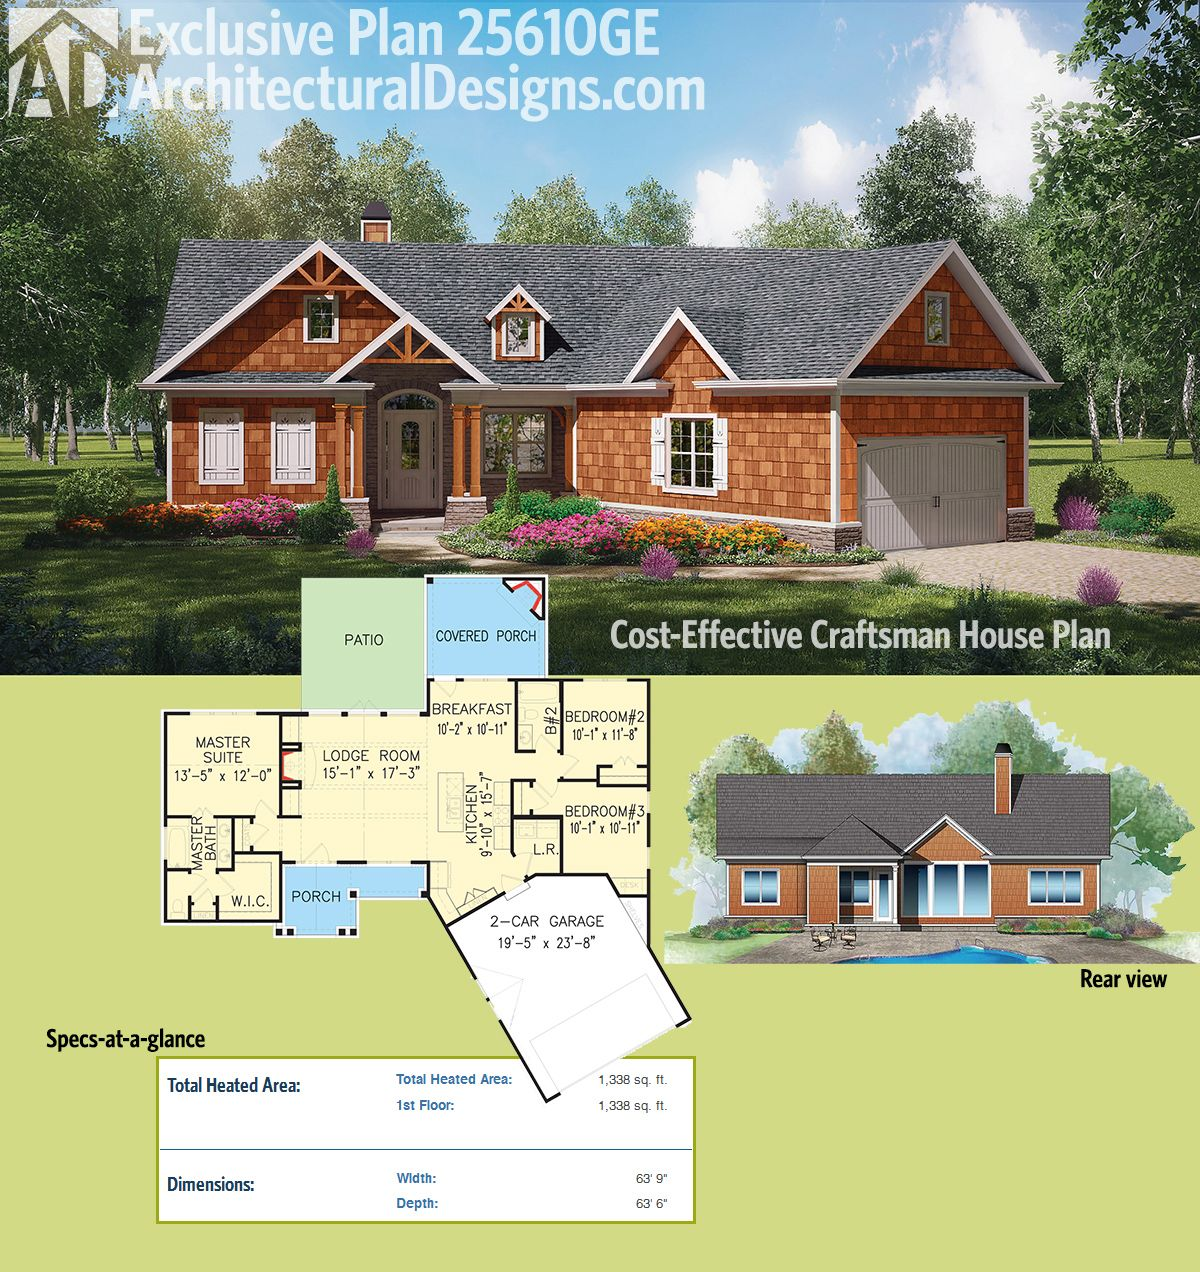 Craftsman home plans cost to build for Rustic home plans with cost to build